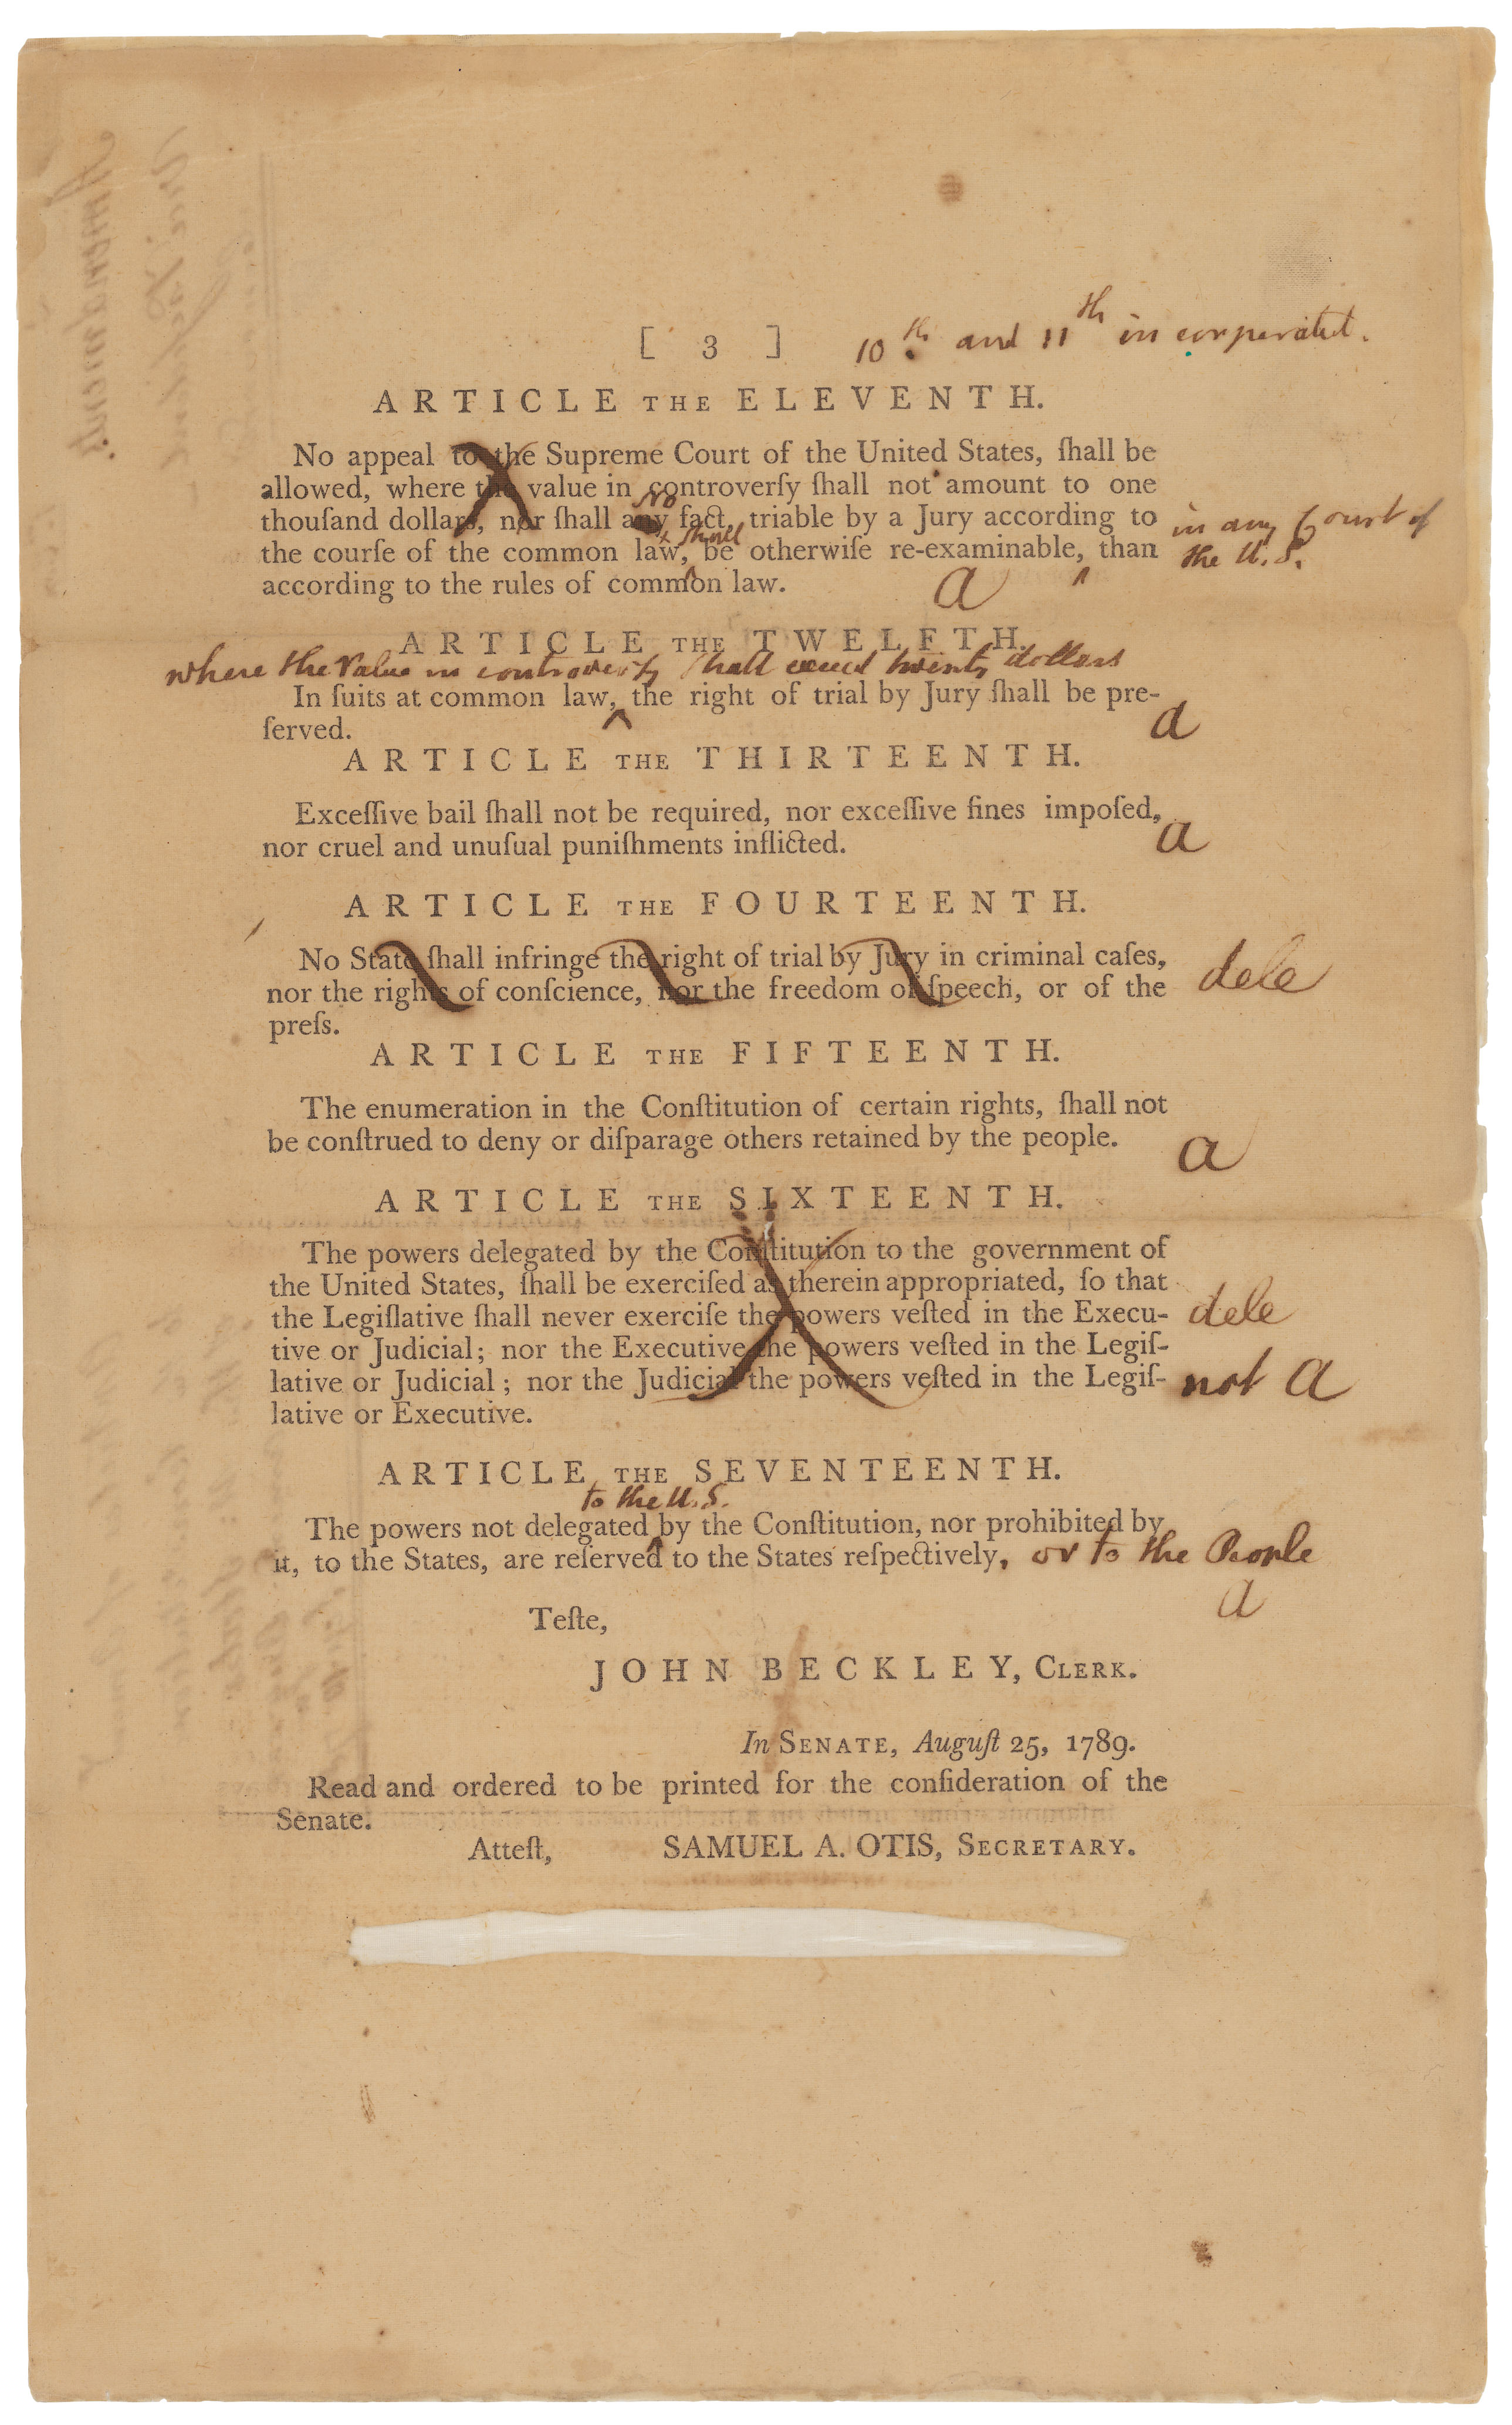 Senate Revisions to the Proposed Bill of Rights, page 3, 9/9/1789. (National Archives Identifier 3535588)